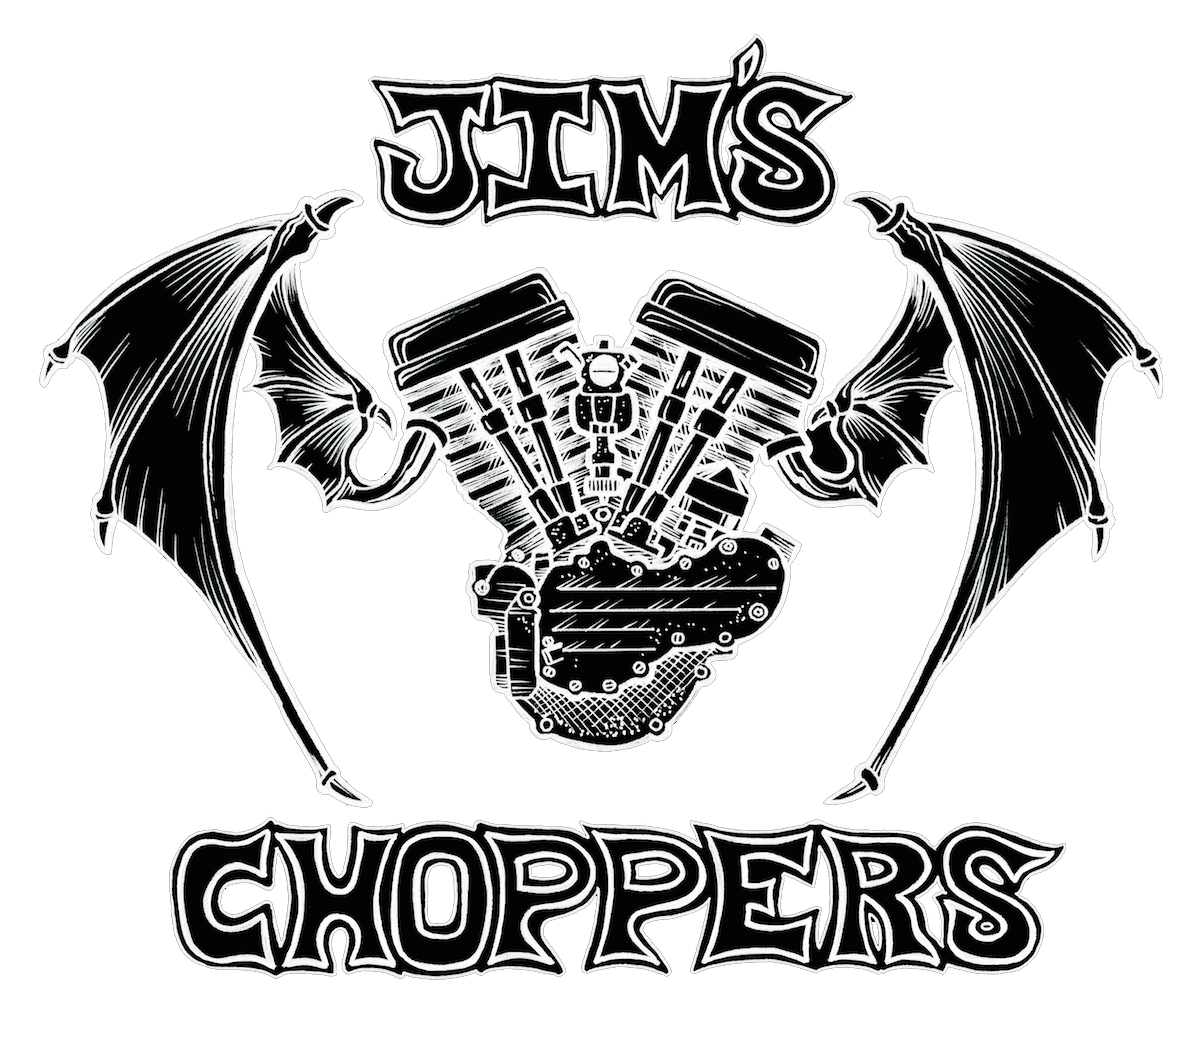 Jim's Choppers